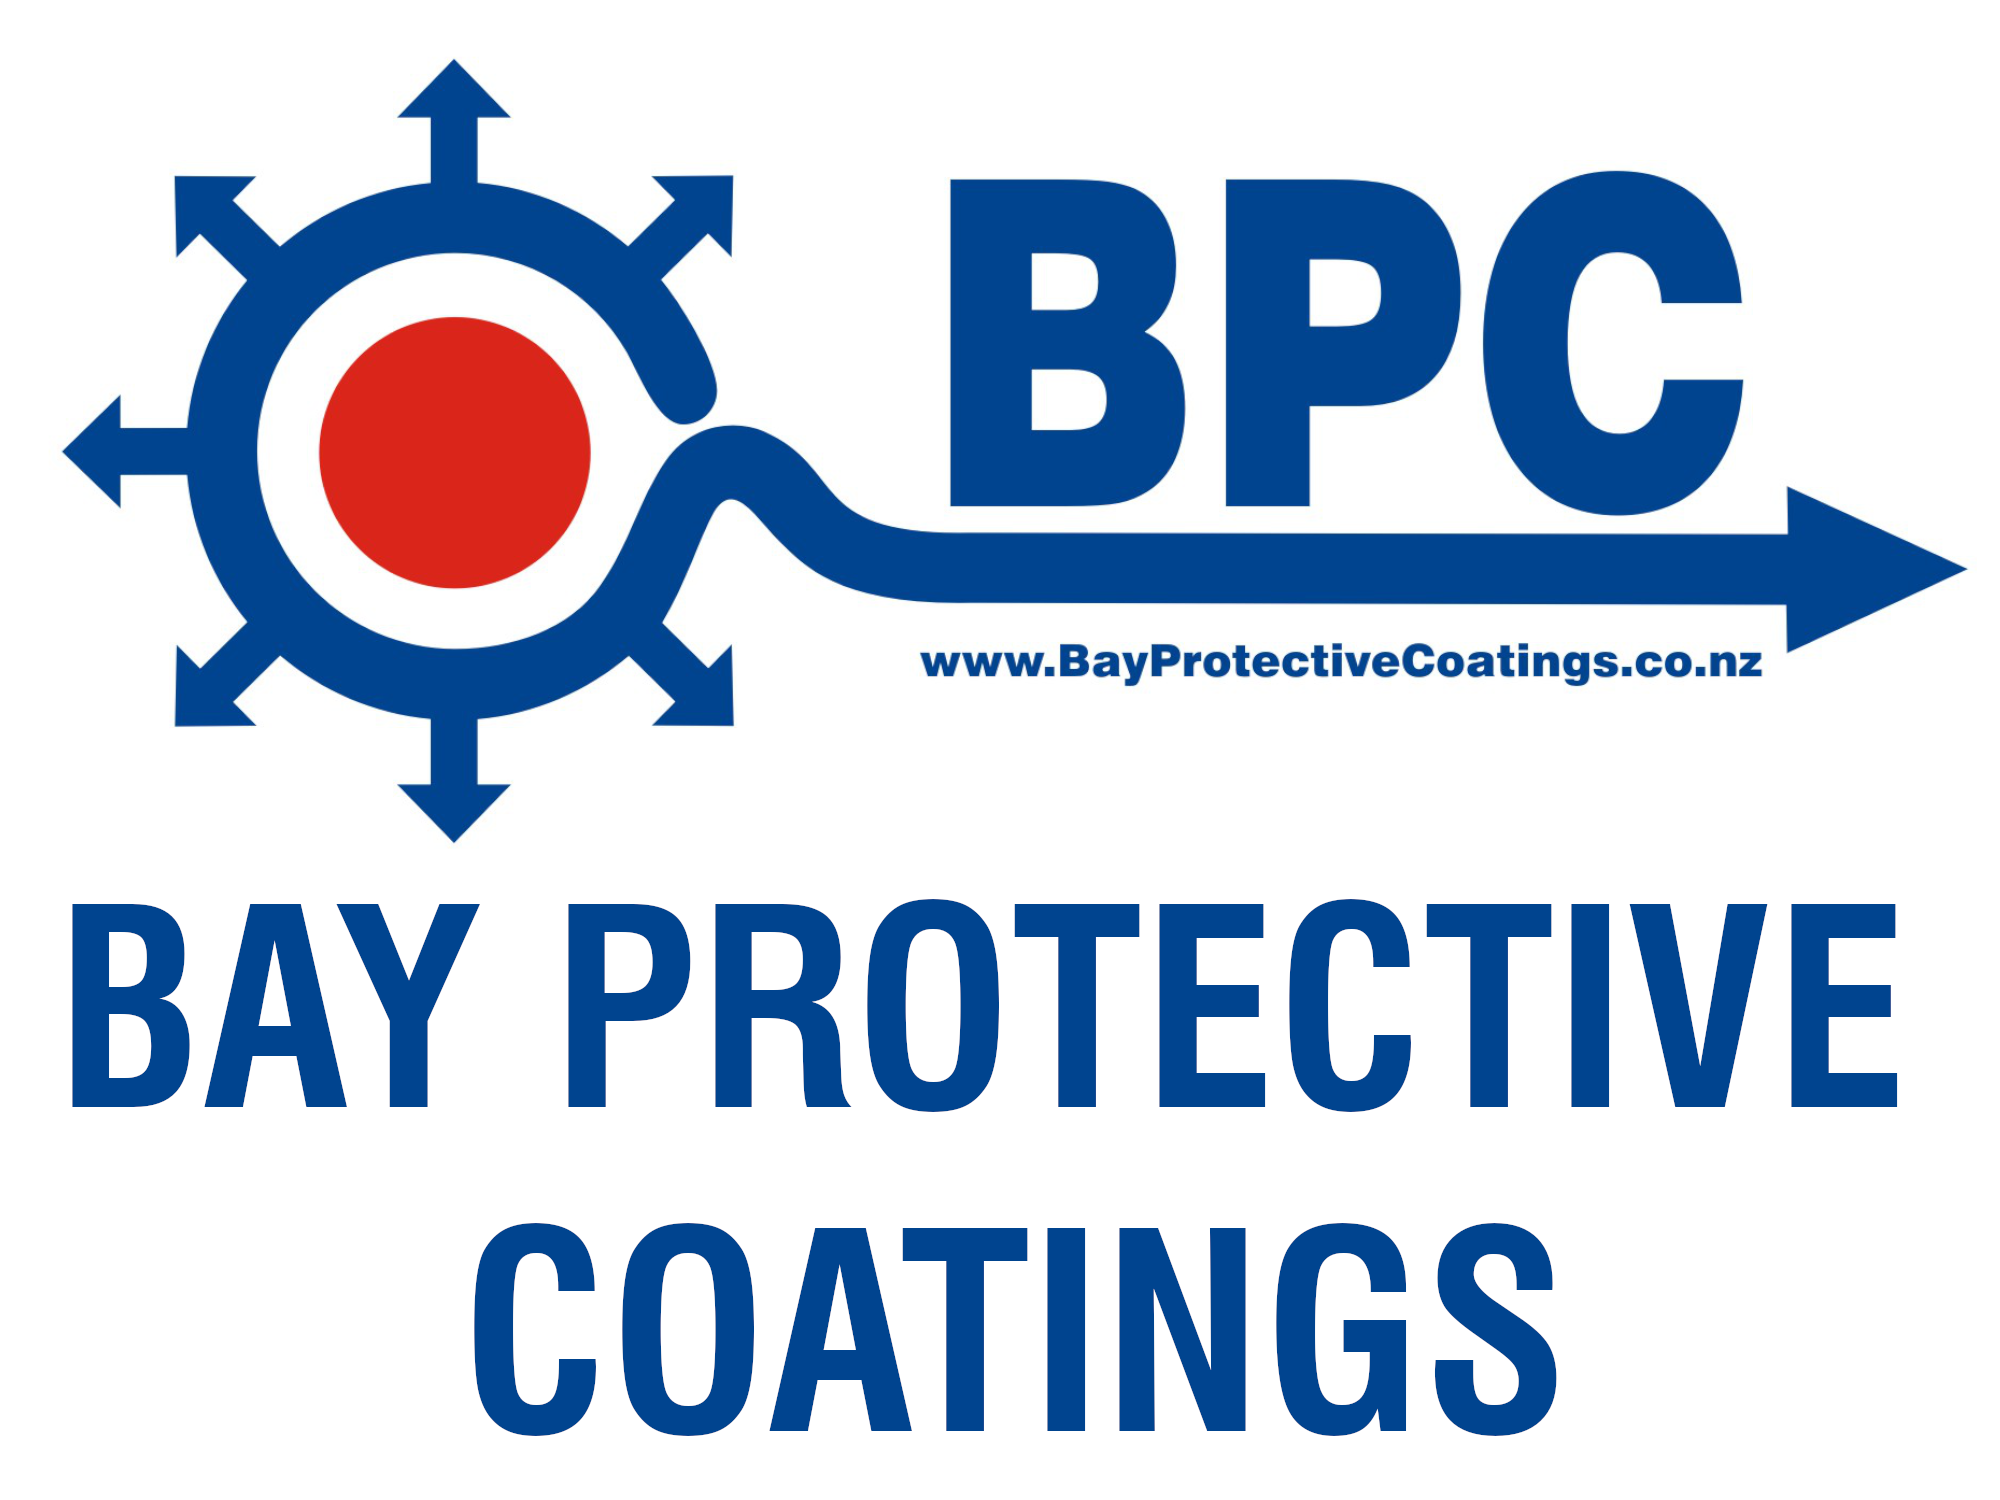 Bay Protective Coatings